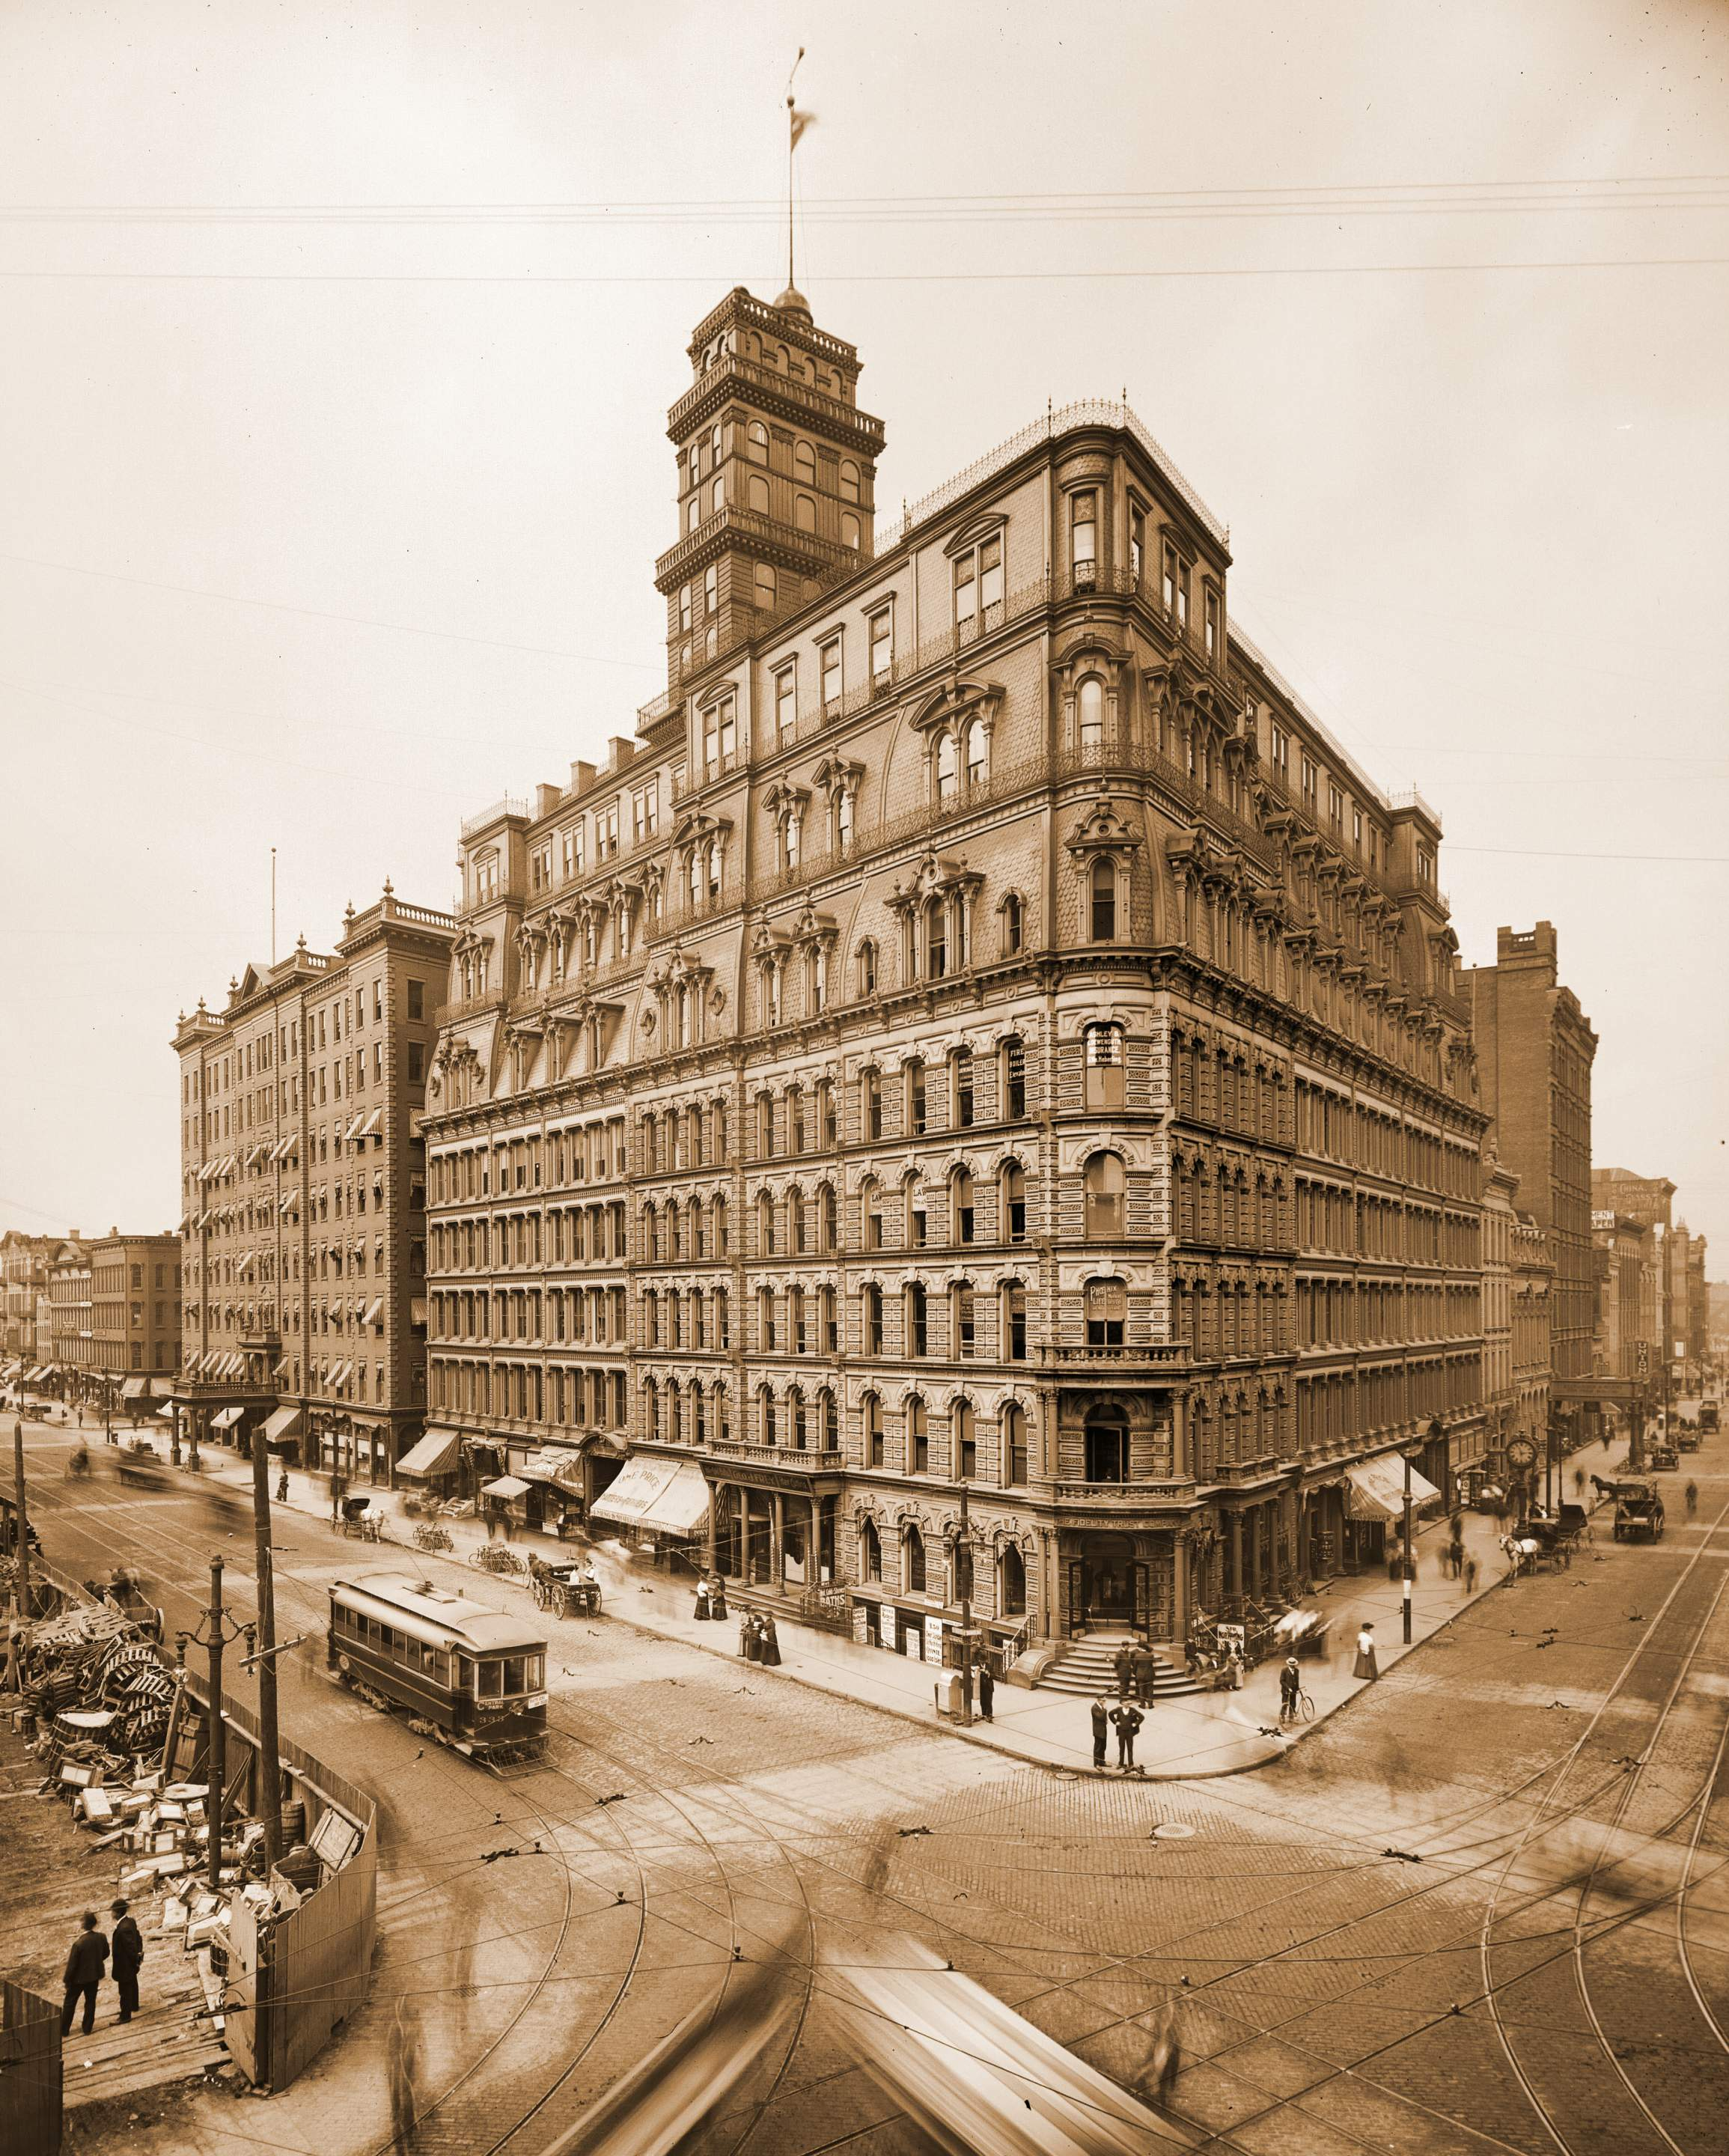 The Powers Building in 1904. The Powers Hotel is visible to the left behind the building.